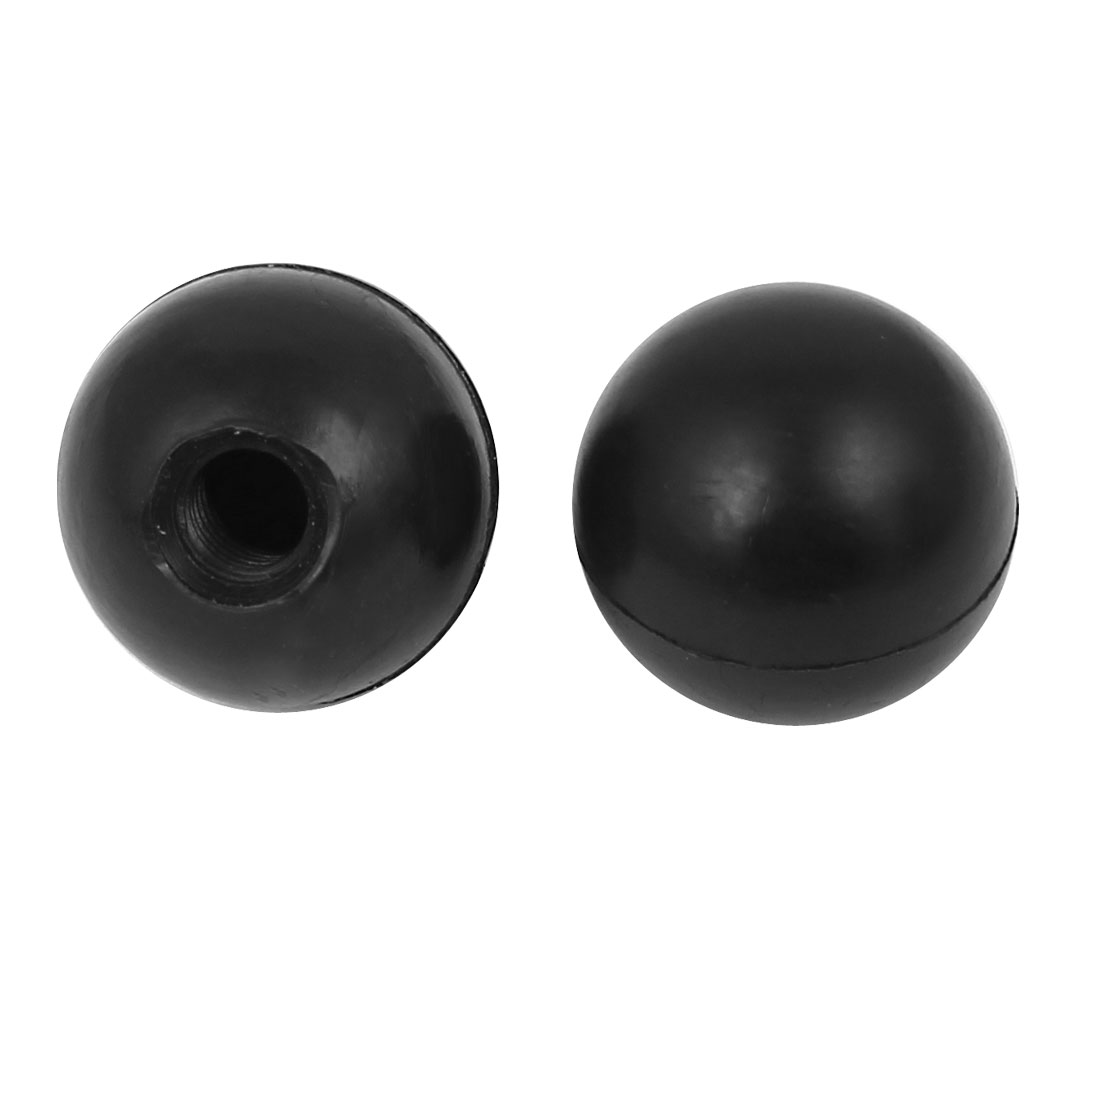 2Pcs Plastic Shell M8x25mm Round Ball Lever Knob Machine Control Grip Black